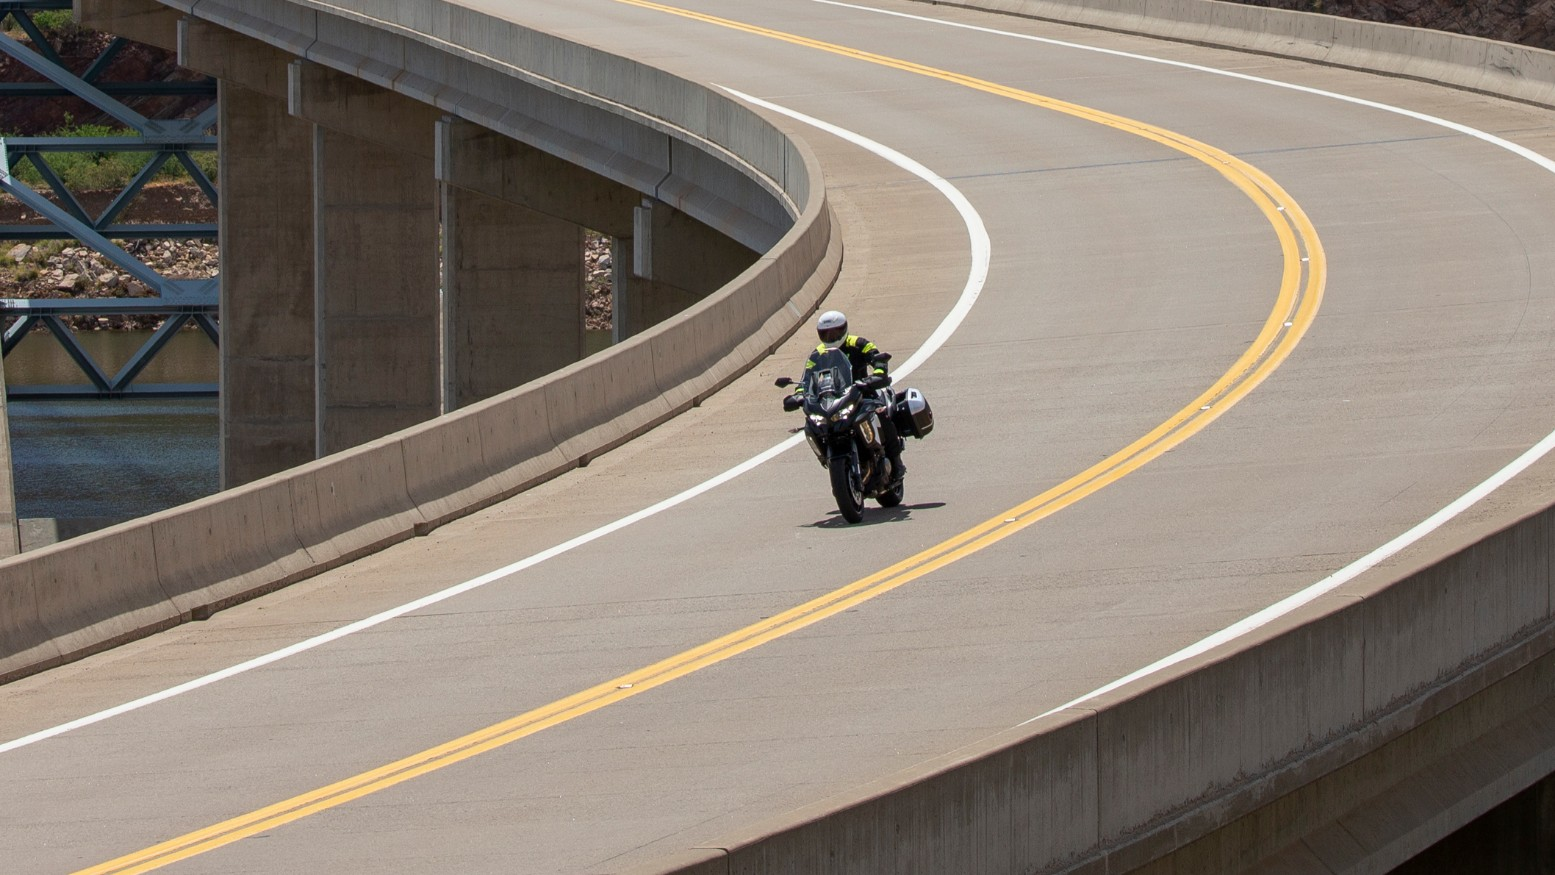 2019 Kawasaki Versys 1000 SE LT+ review: The 5,403-mile road